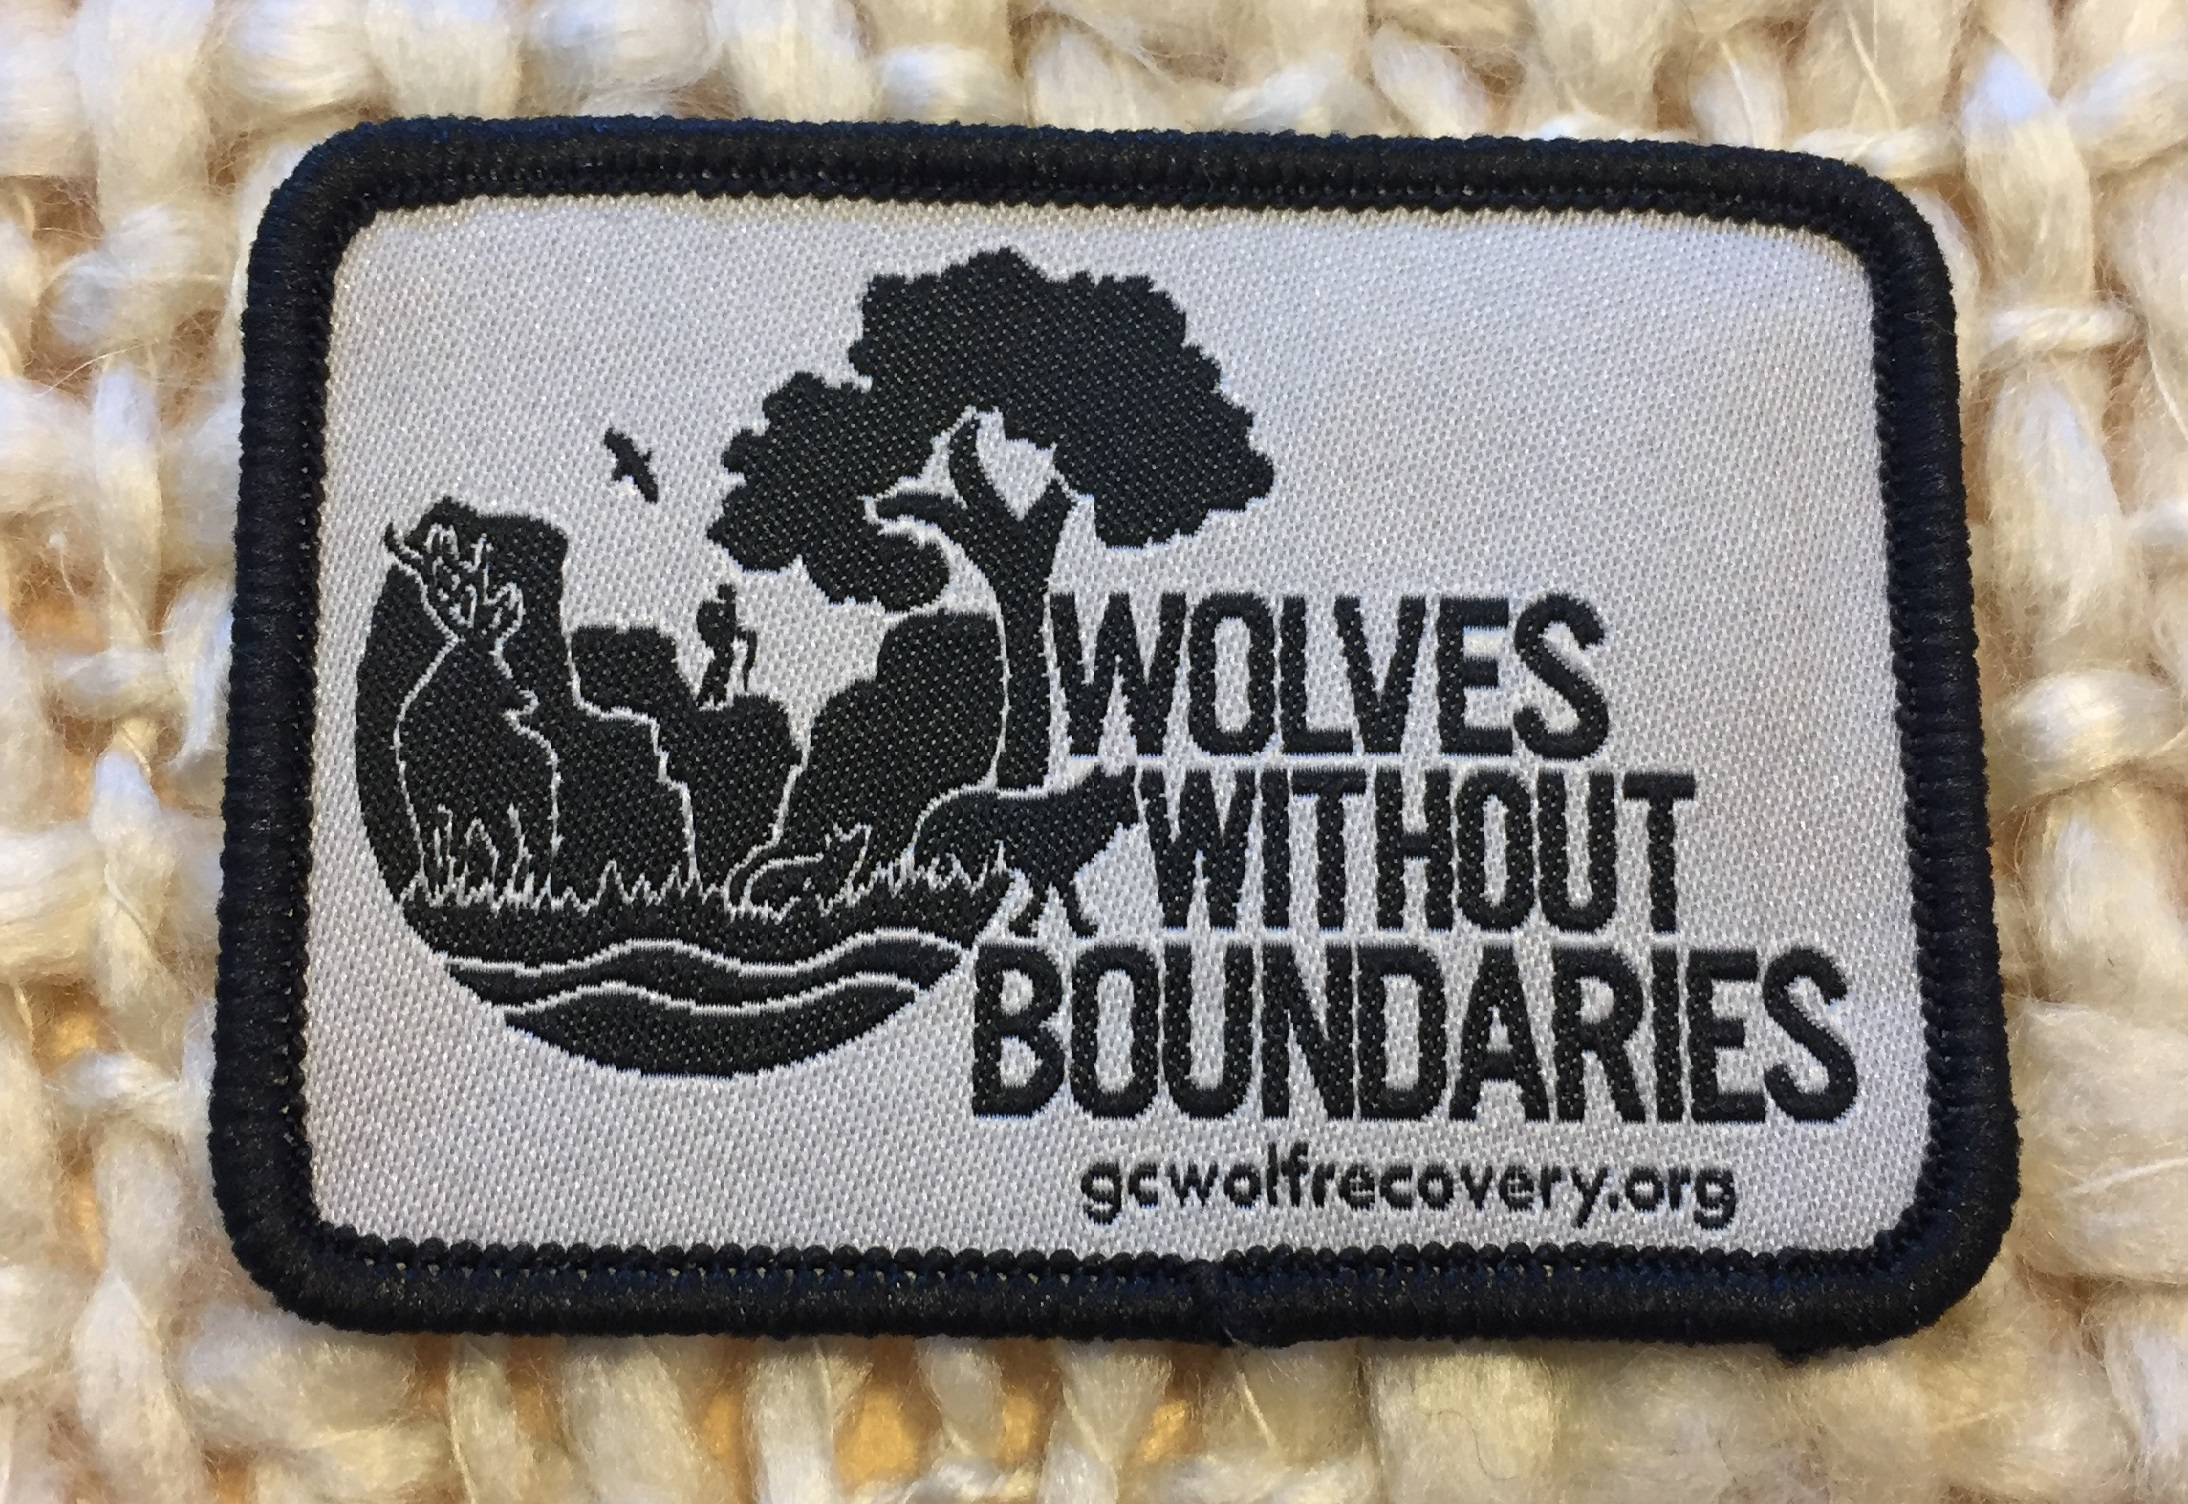 WWB patch